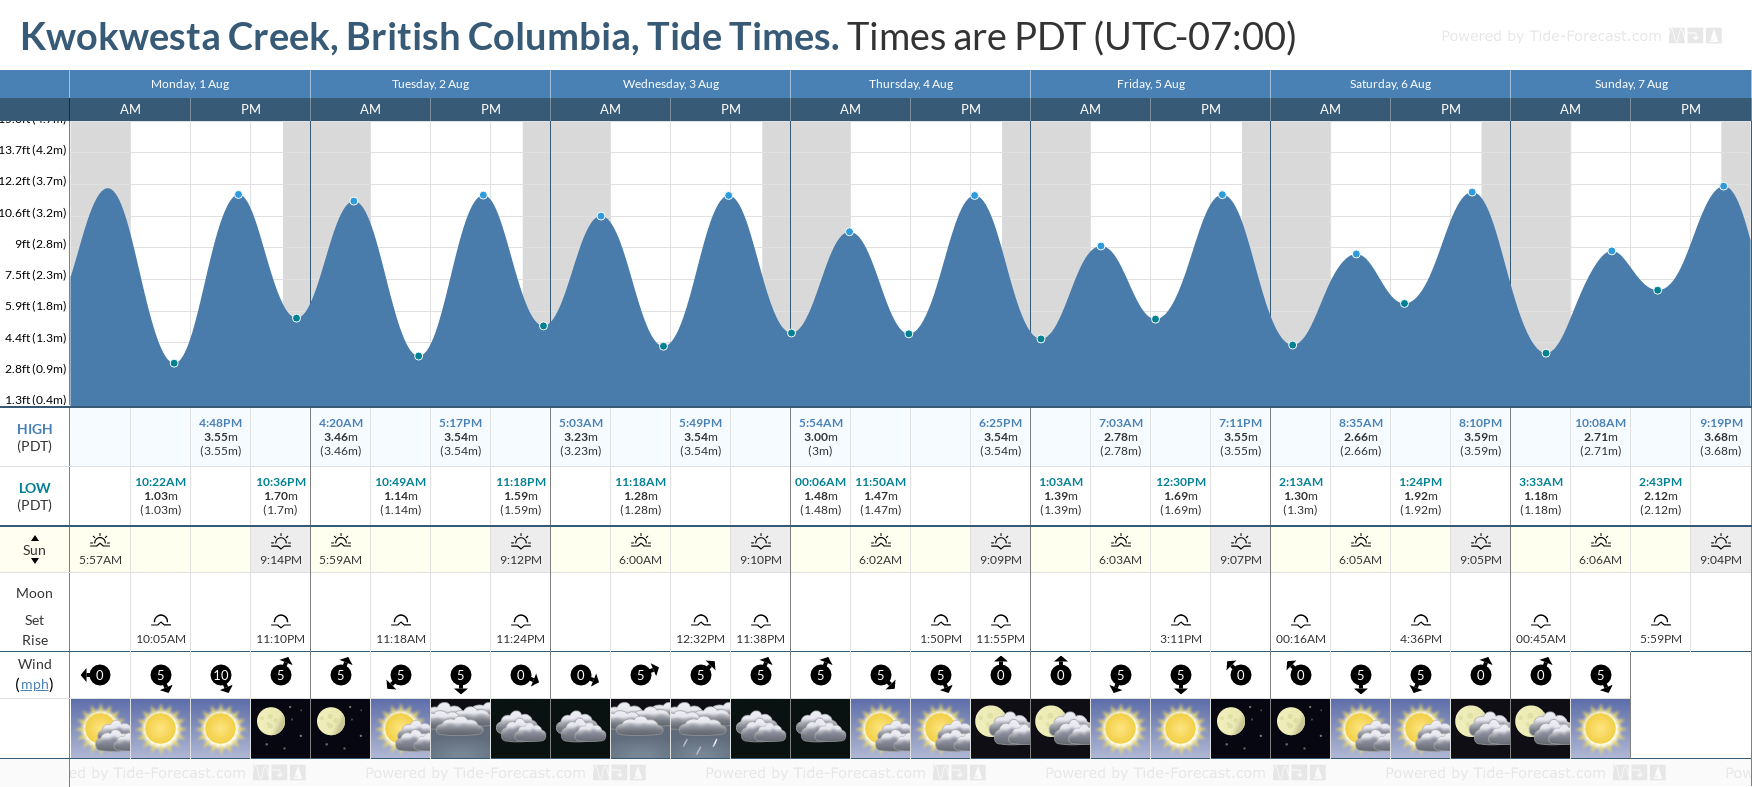 Kwokwesta Creek, British Columbia Tide Chart including high and low tide tide times for the next 7 days